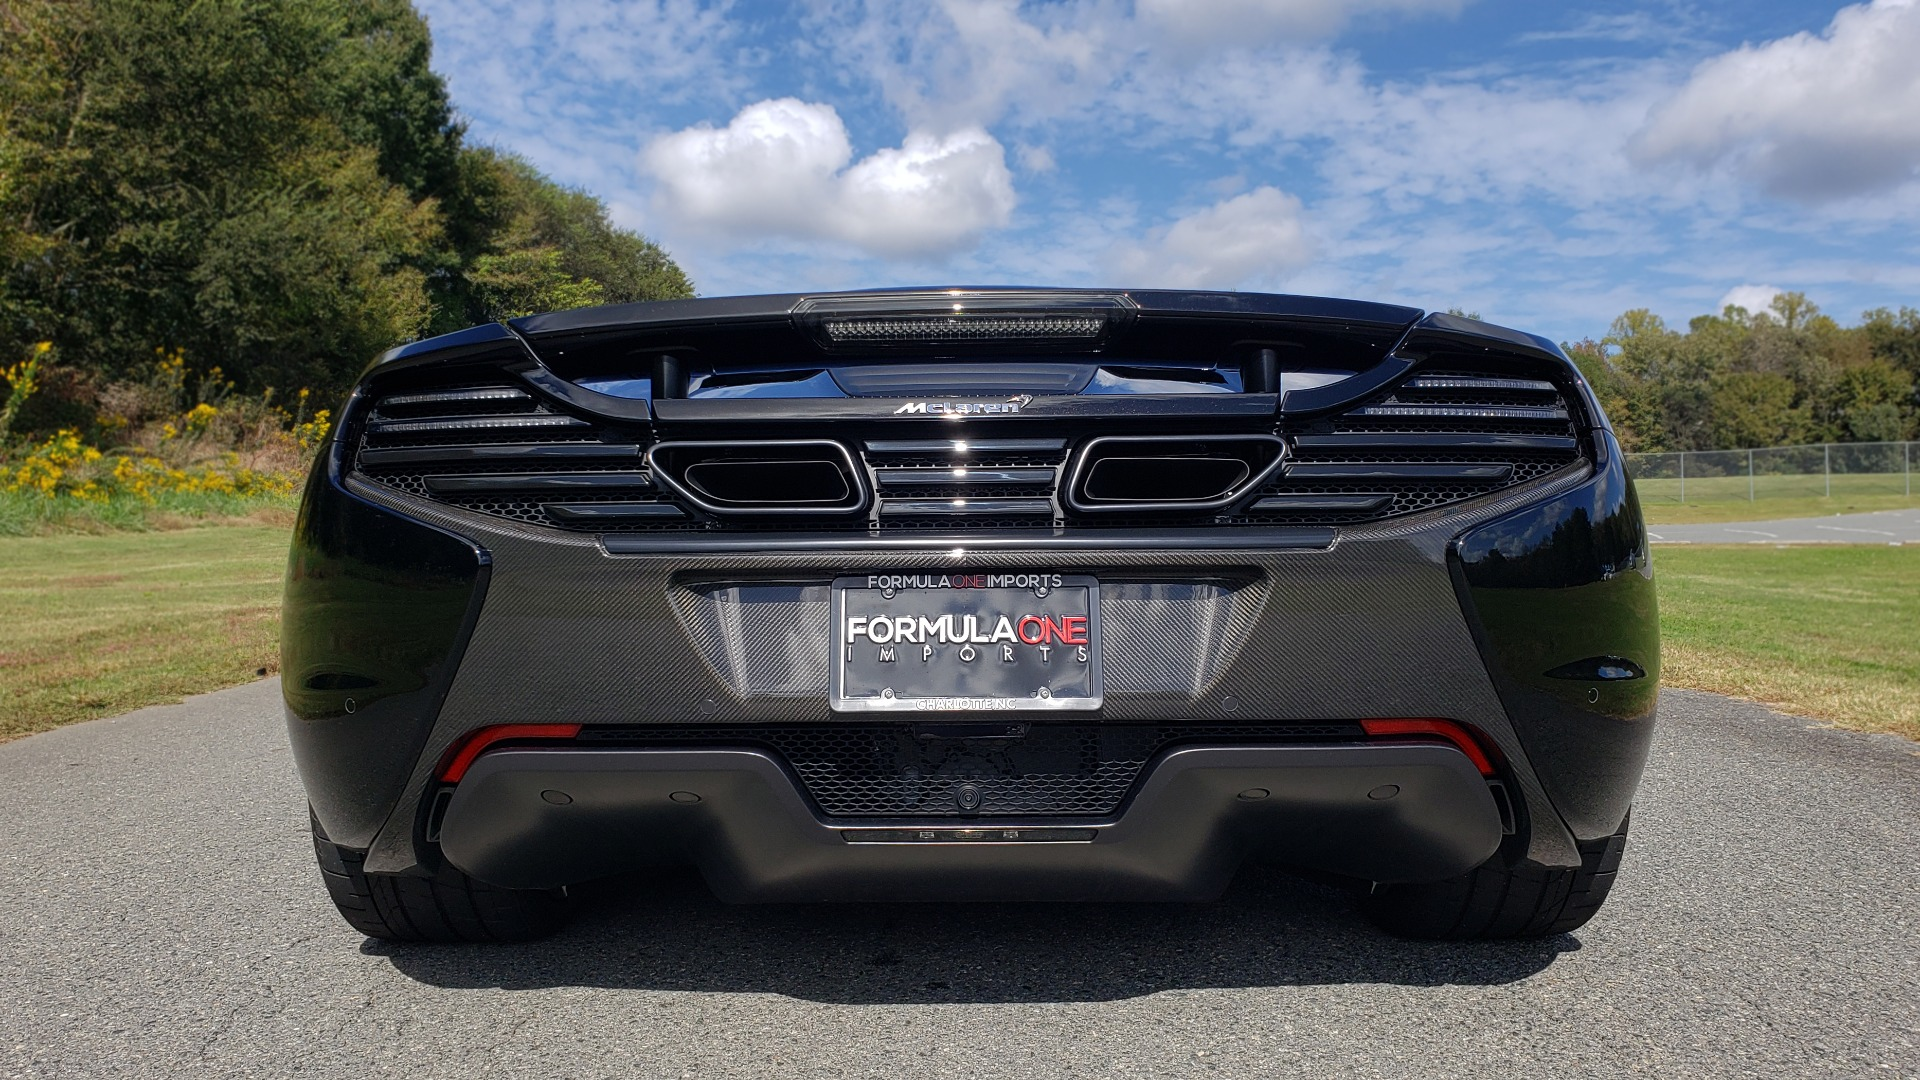 Used 2016 McLaren 650S SPIDER / 641HP / PARK SENSORS / LOW MILES / 1-OWNER for sale Sold at Formula Imports in Charlotte NC 28227 24